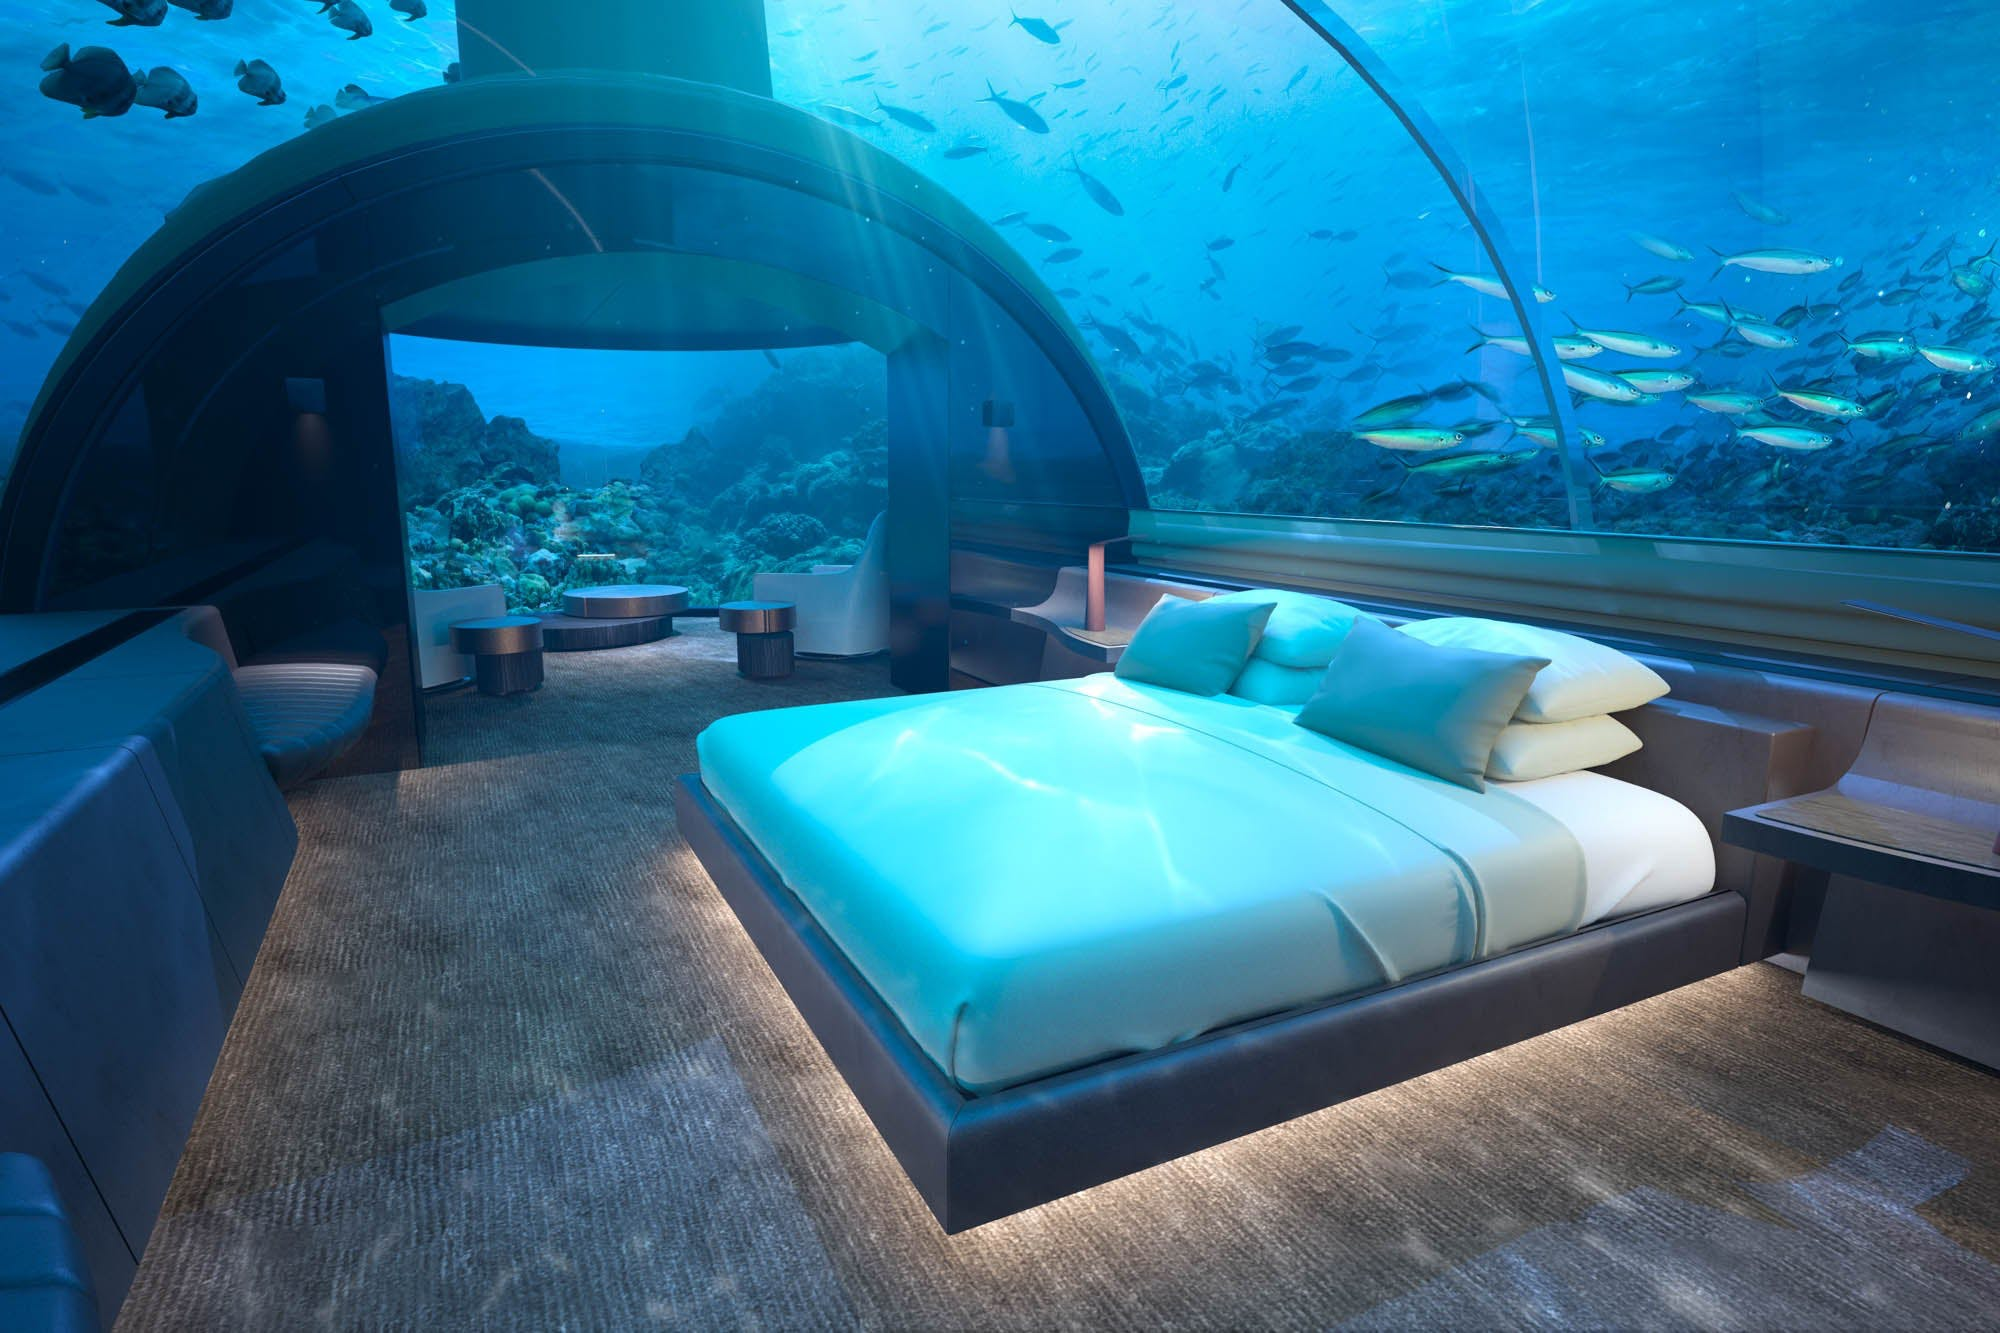 Top 8 Underwater Hotel in the World